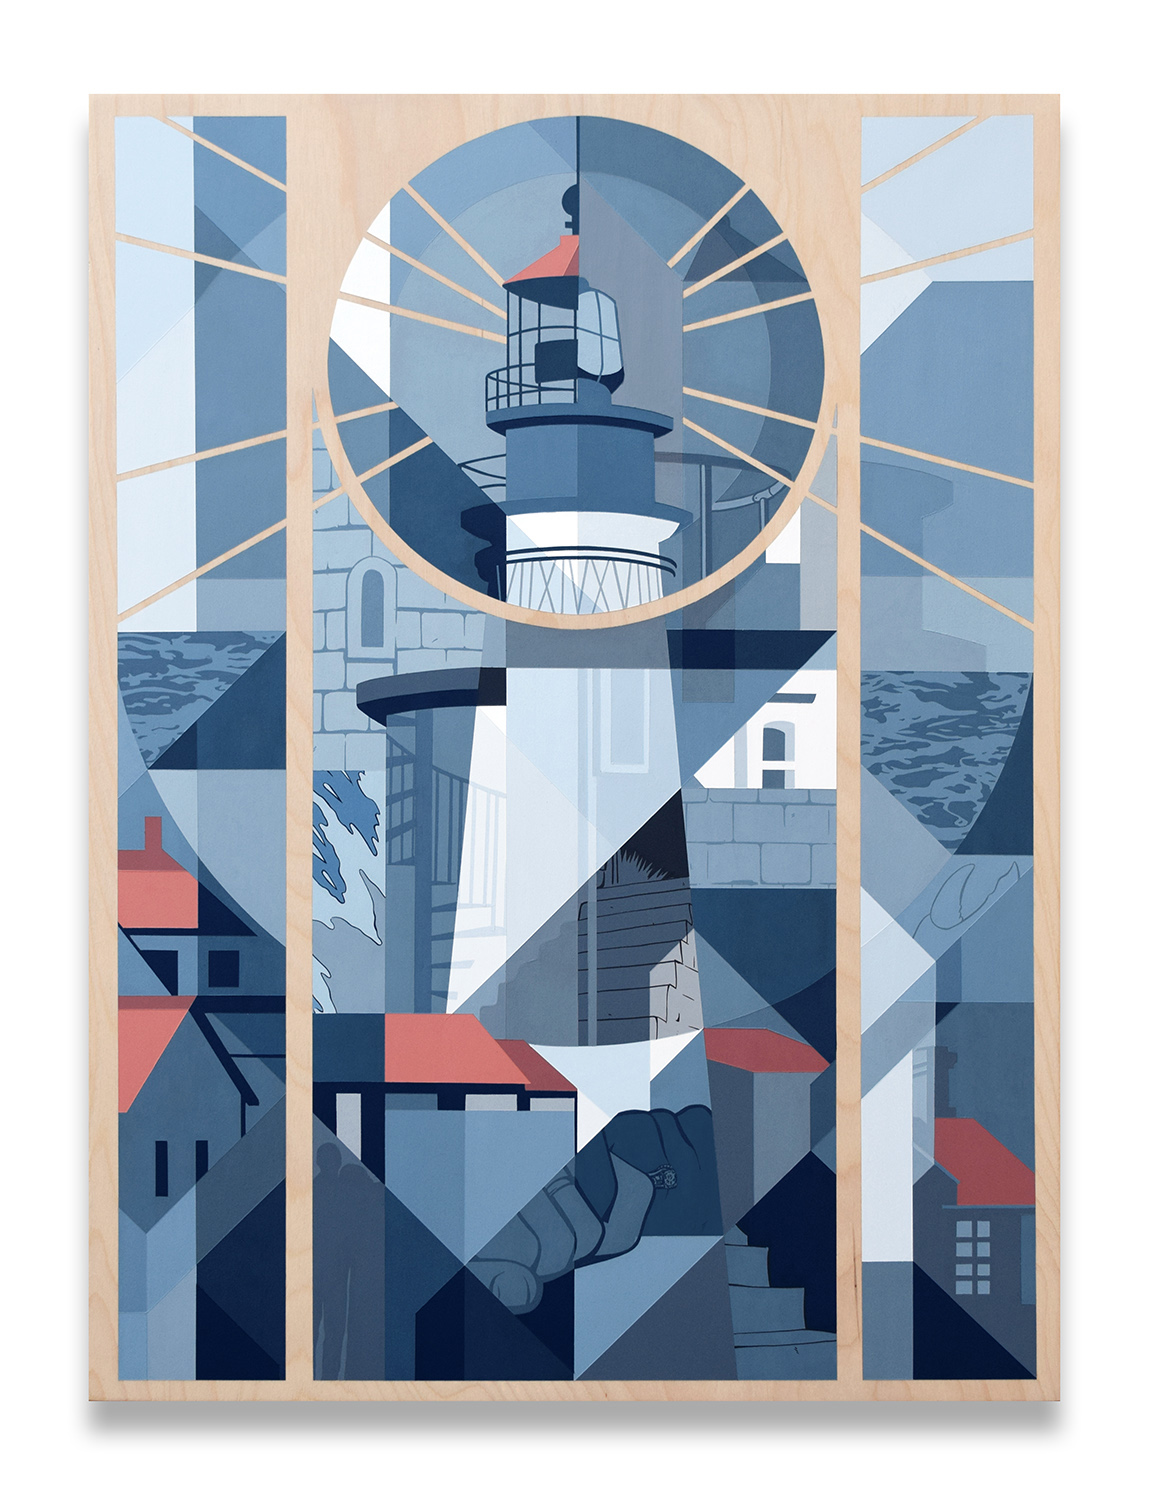 """Portland Head Lighthouse"" 56cm x 76cm (22"" x 30"") Acrylic painting on birch panel."